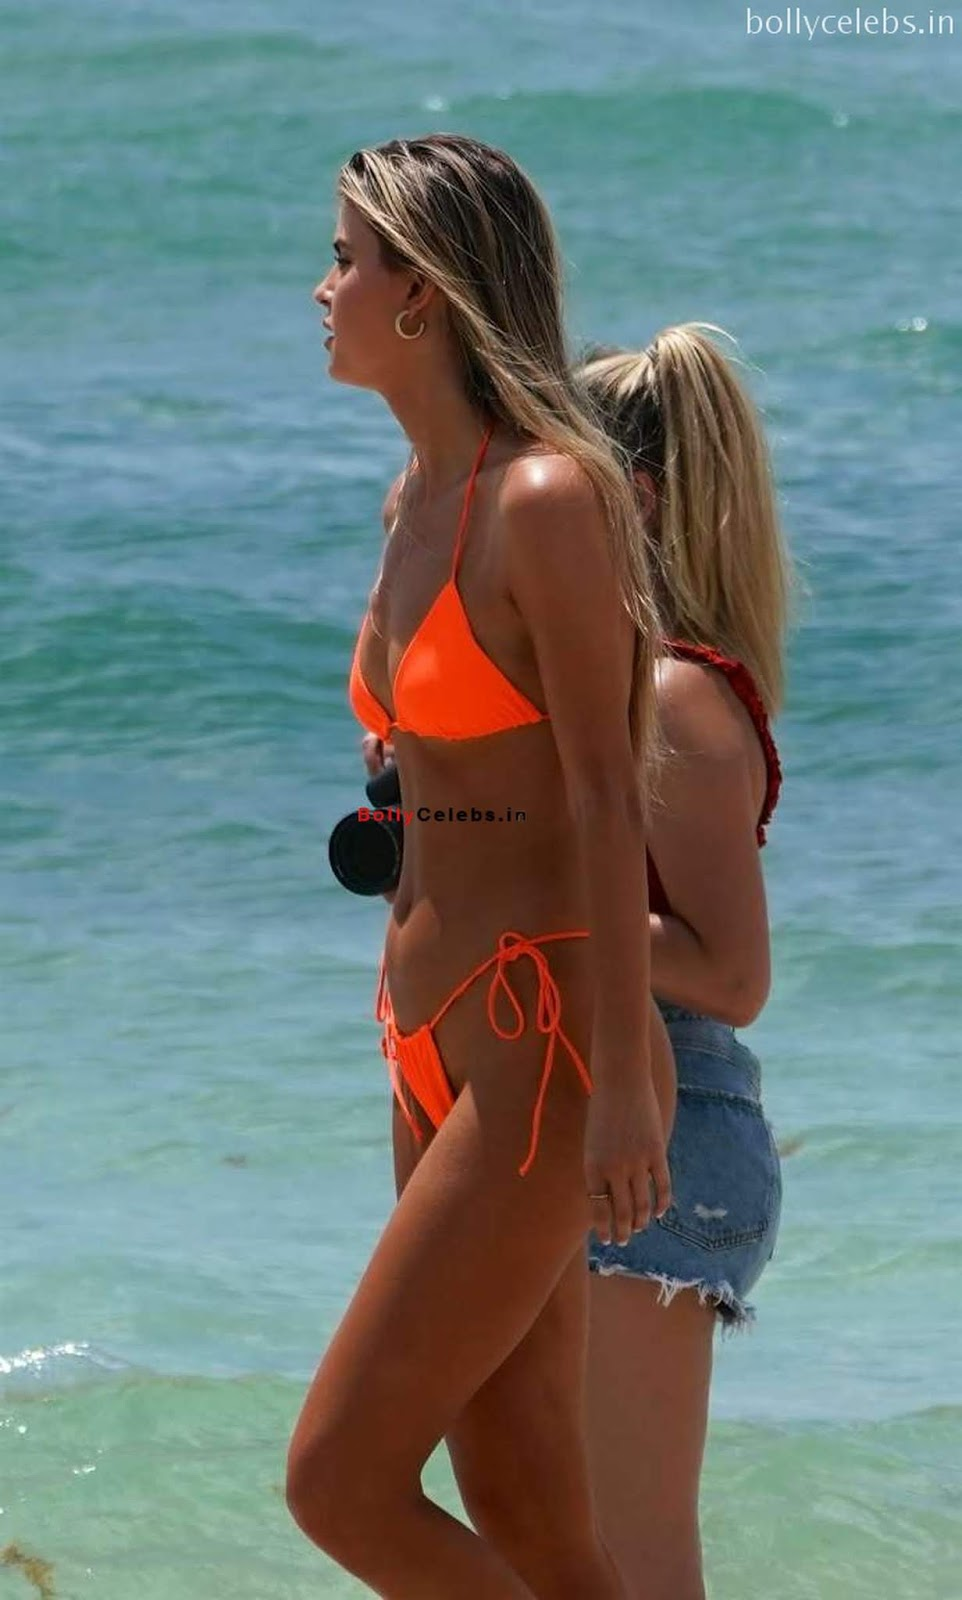 Kellie+Stewart+Sexy+Celeb+in+Small+Tiny+Red+Bikini+in+Miami+Leaked+Hidden+Pics+Ultra+Hot+Ass+Cleavages+Boobs+bollycelebs.in+Exclusive+Pics+002.jpg